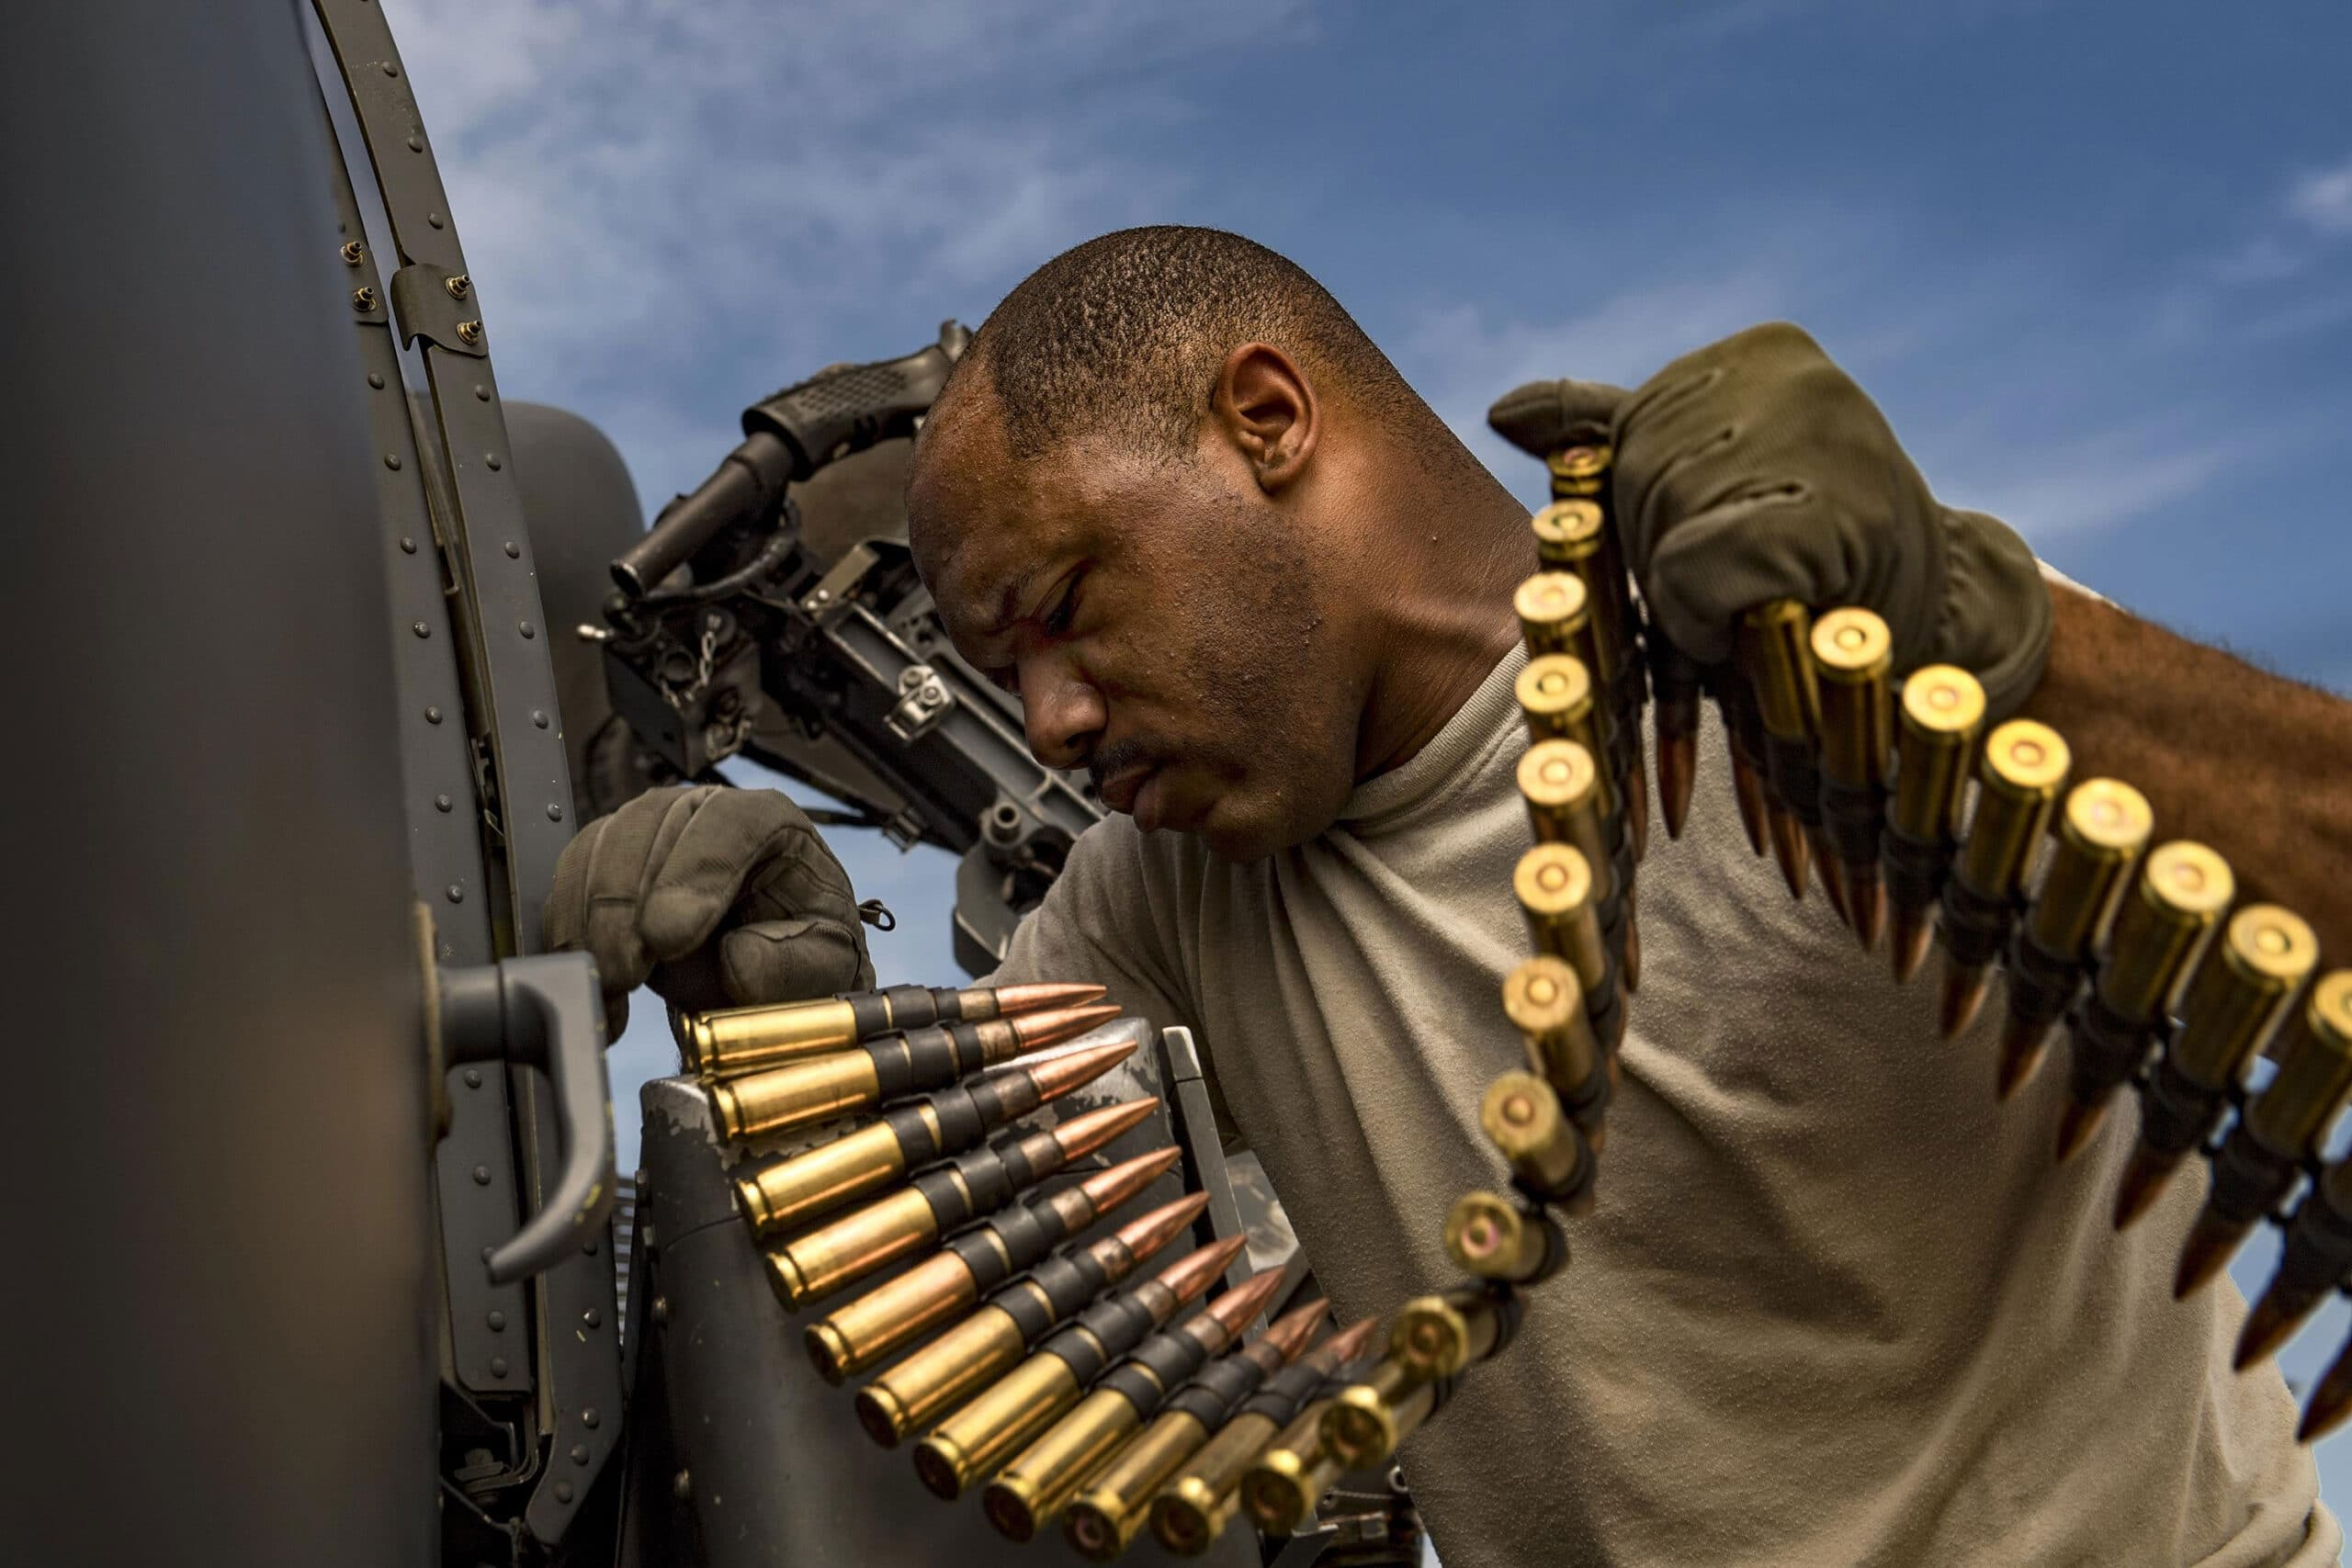 United States Air Force Tech. Sgt. Brandon Middleton loads a can of whoop-ass .50-caliber rounds into a machine gun on an HH-60G Pave Hawk helicopter at Moody Air Force Base, Georgia.